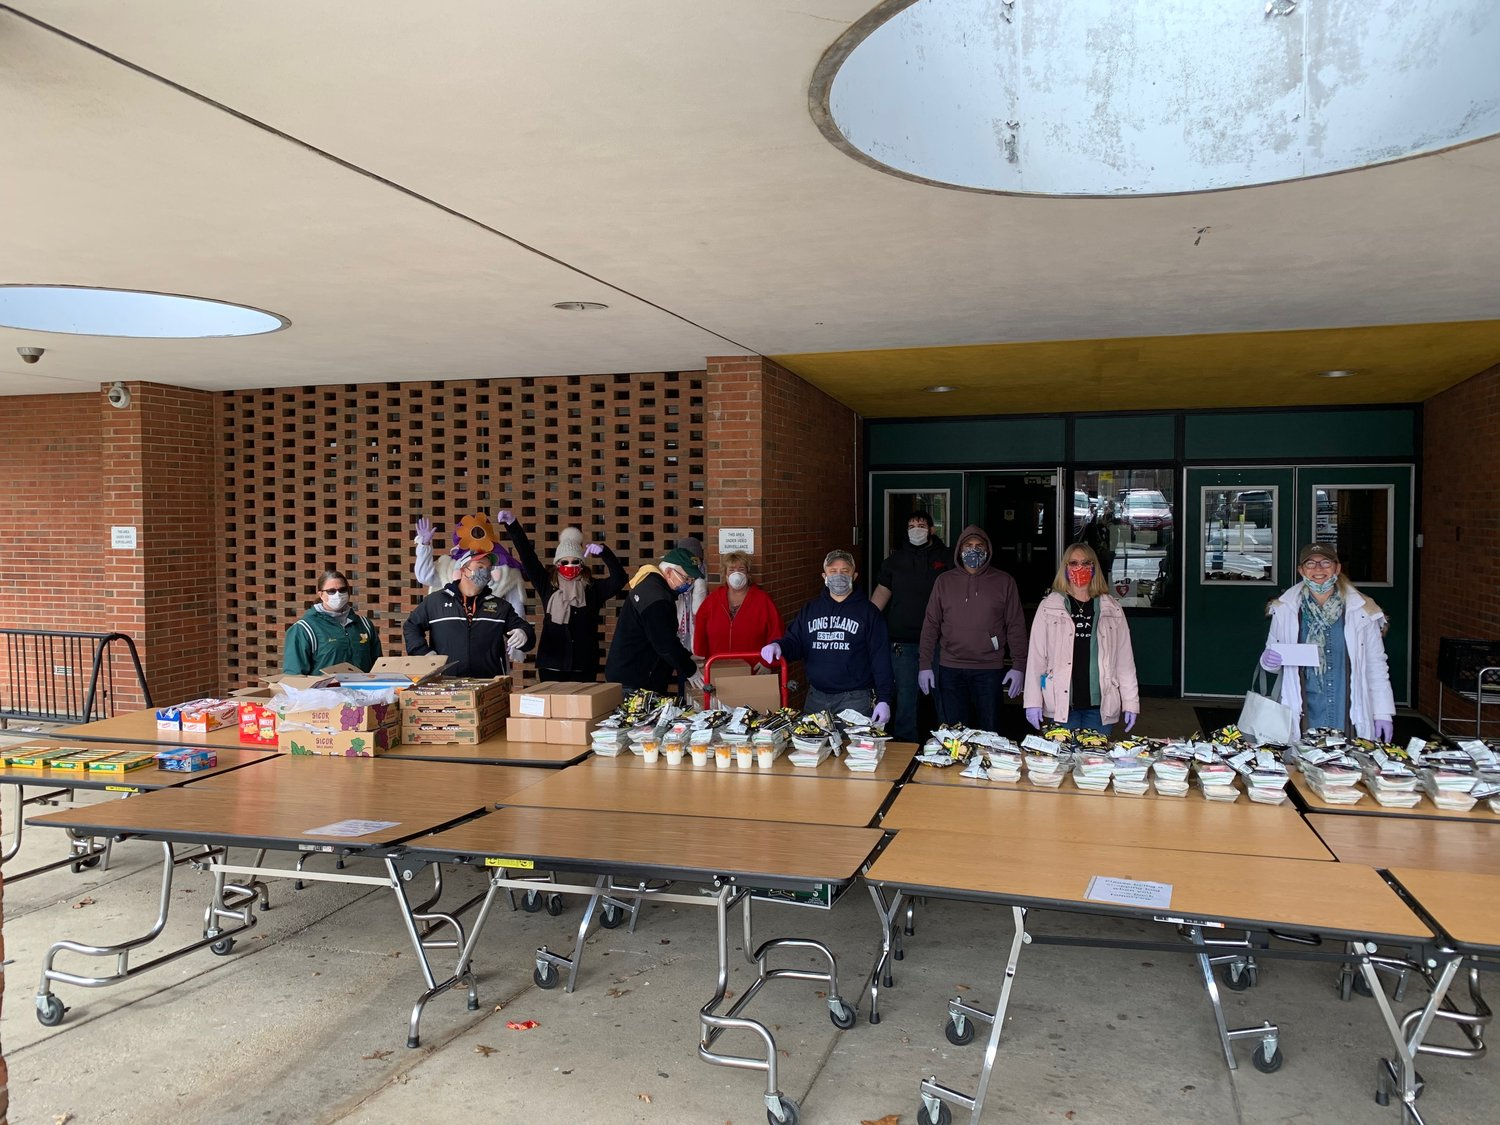 The Lynbrook Teachers Association recently purchased 45 gift cards of $30 value from local businesses to provide to families in need in the village.